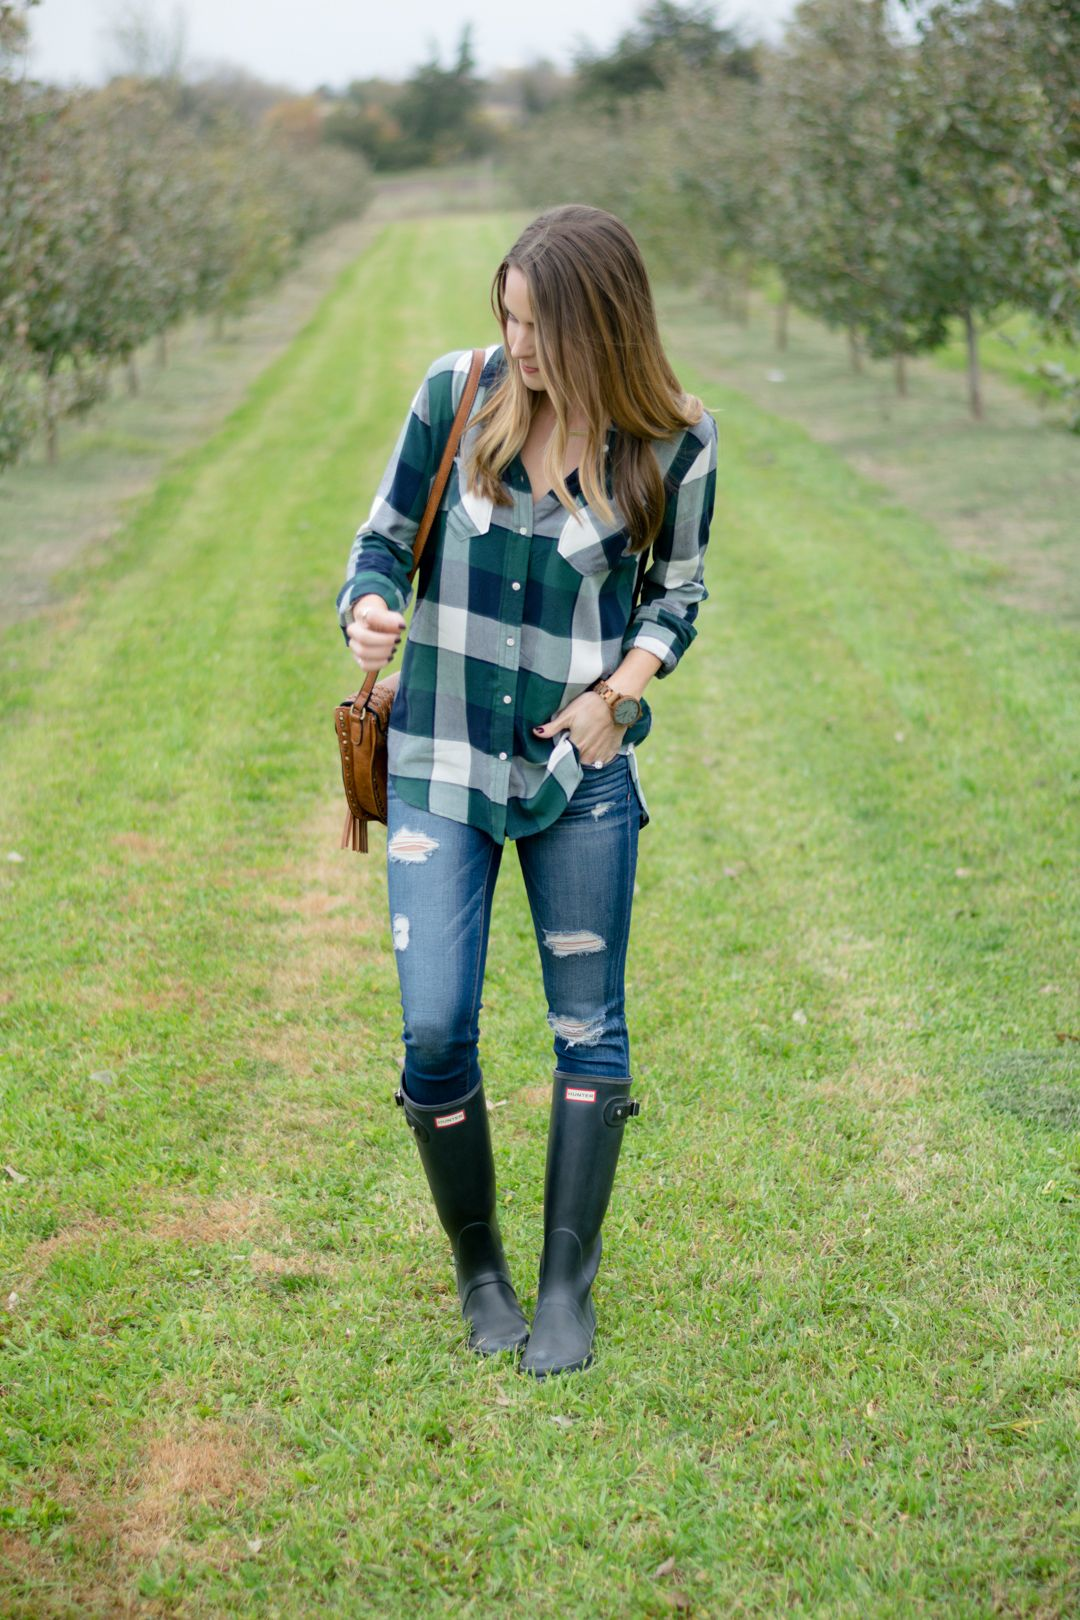 Flannel shirt outfit women  apple orchard outfit plaid shirt outfit women black hunter boots